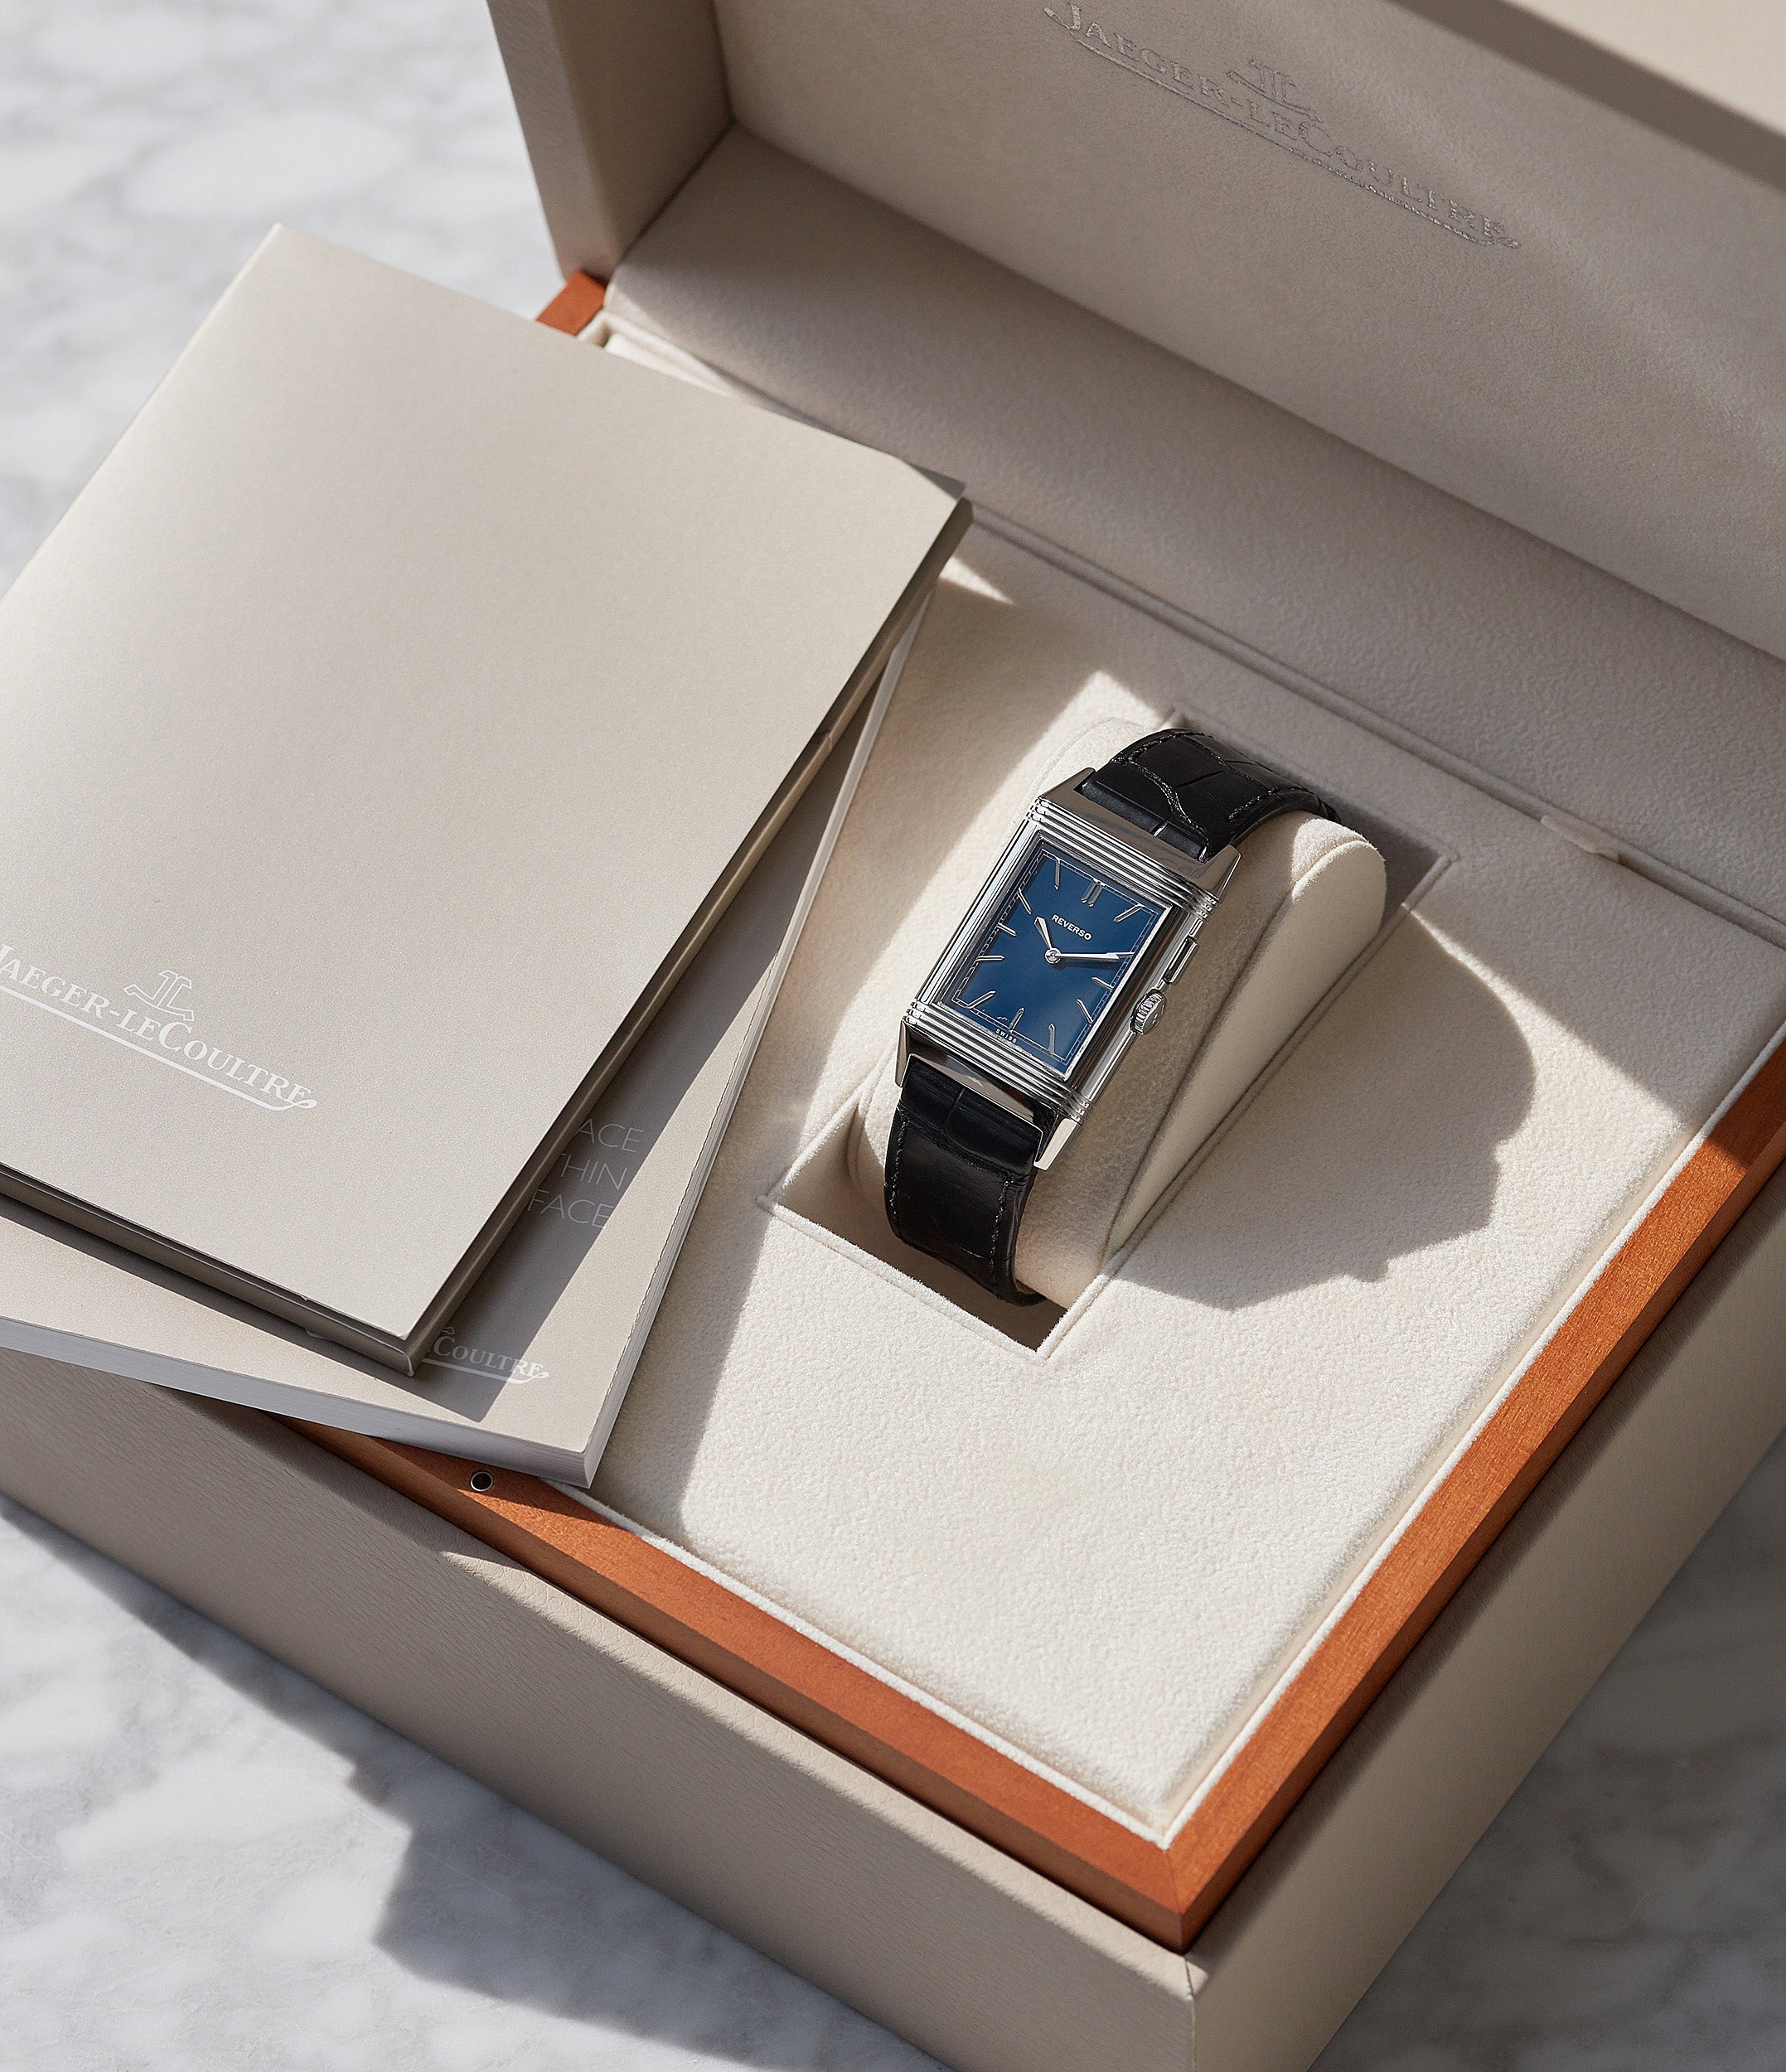 full set Jaeger-LeCoultre Grand Reverso Duoface Blue Ultra-Thin Boutique Edition 278.8.54 steel preowned traveller